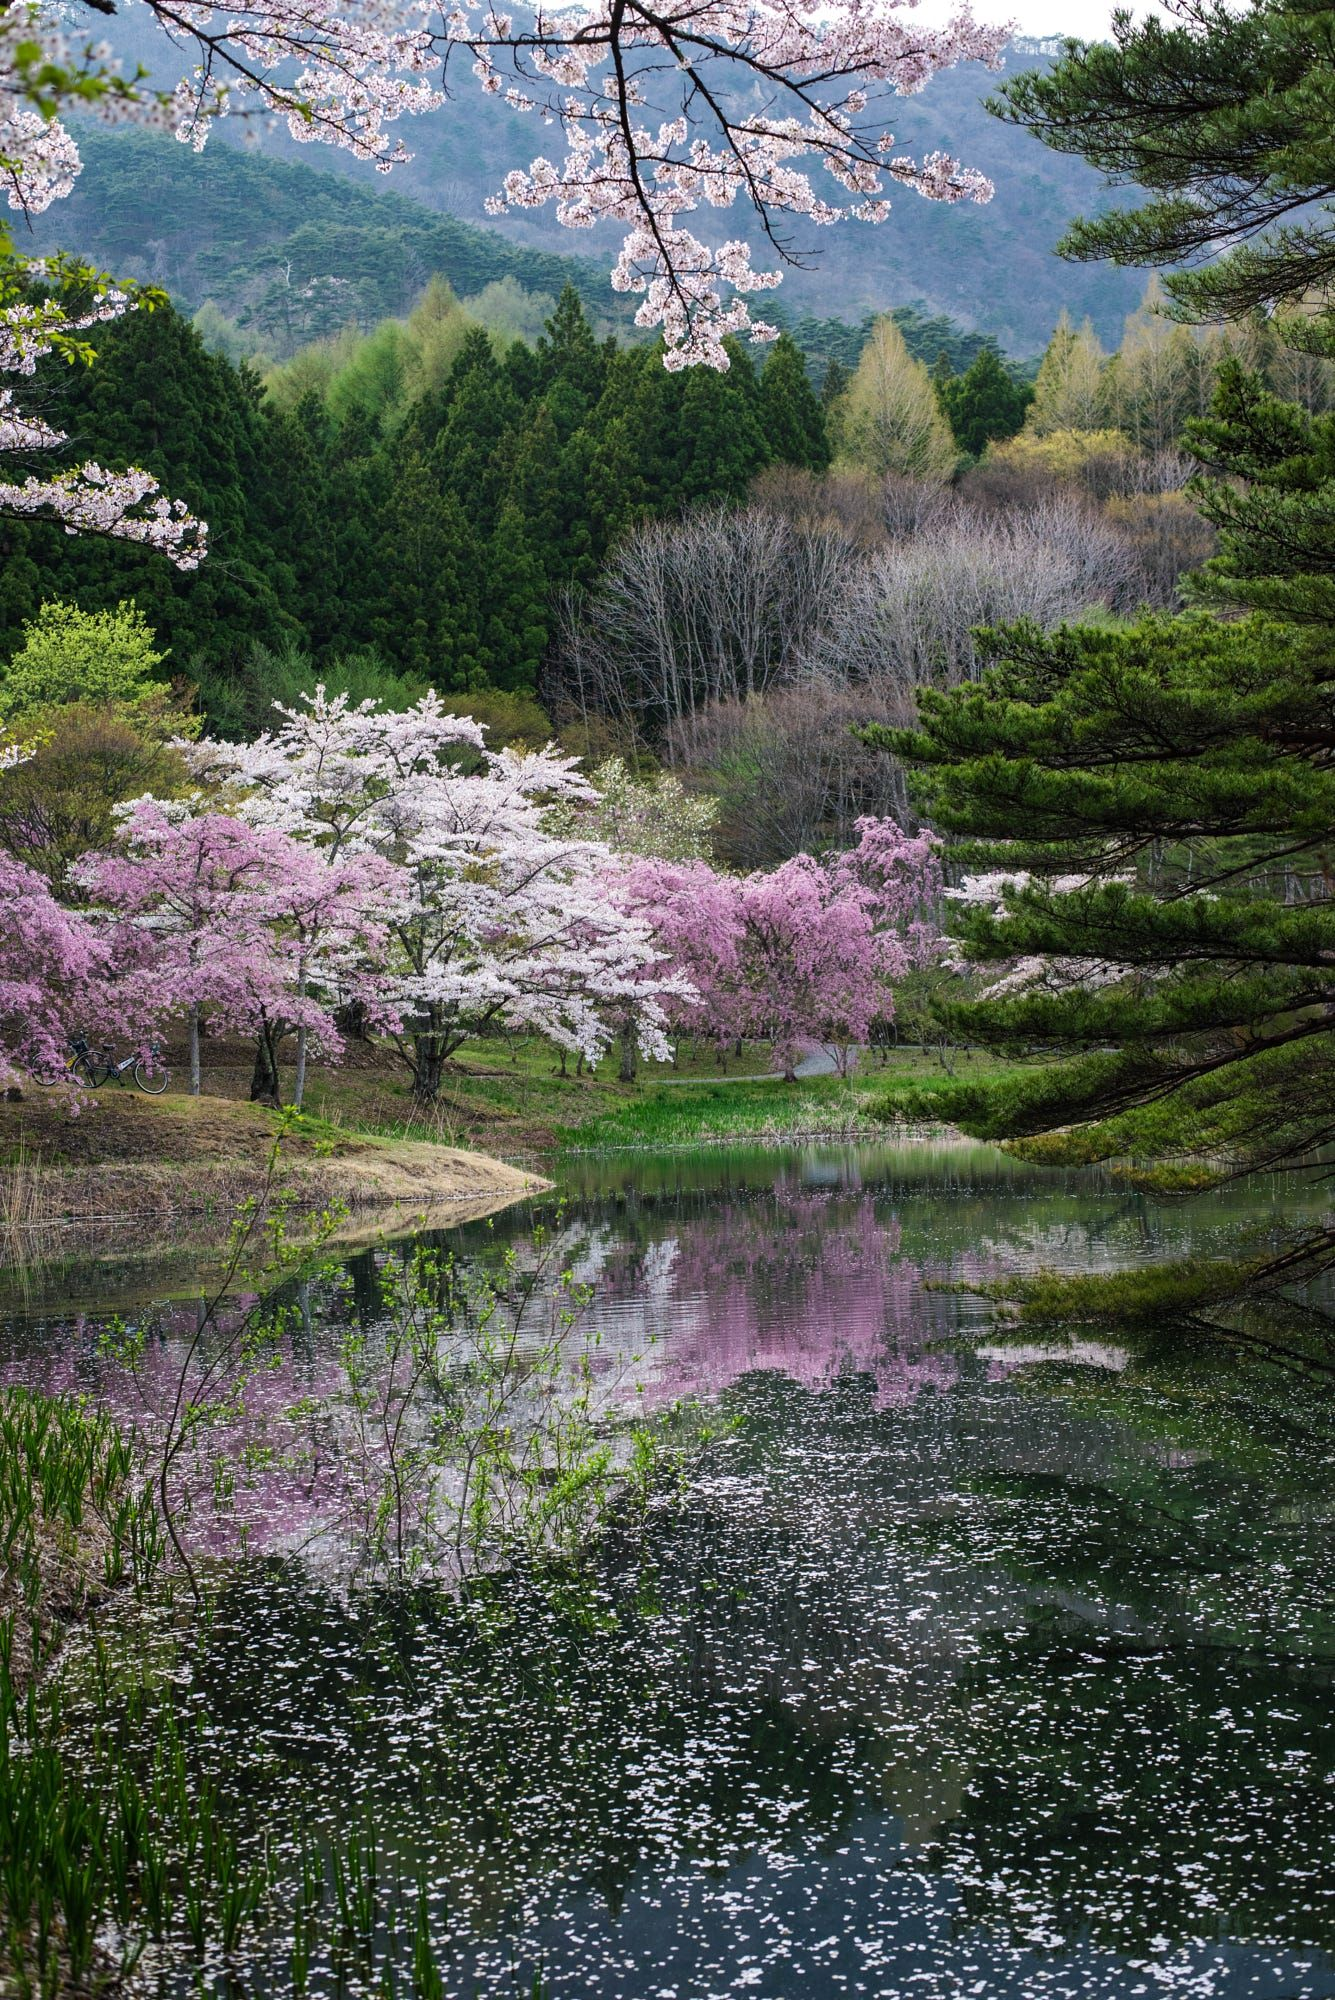 This Is Spring Of Japan Clear Pink Cherry Blossoms Are Blooming In The Mountains Reflected On Surface Water More